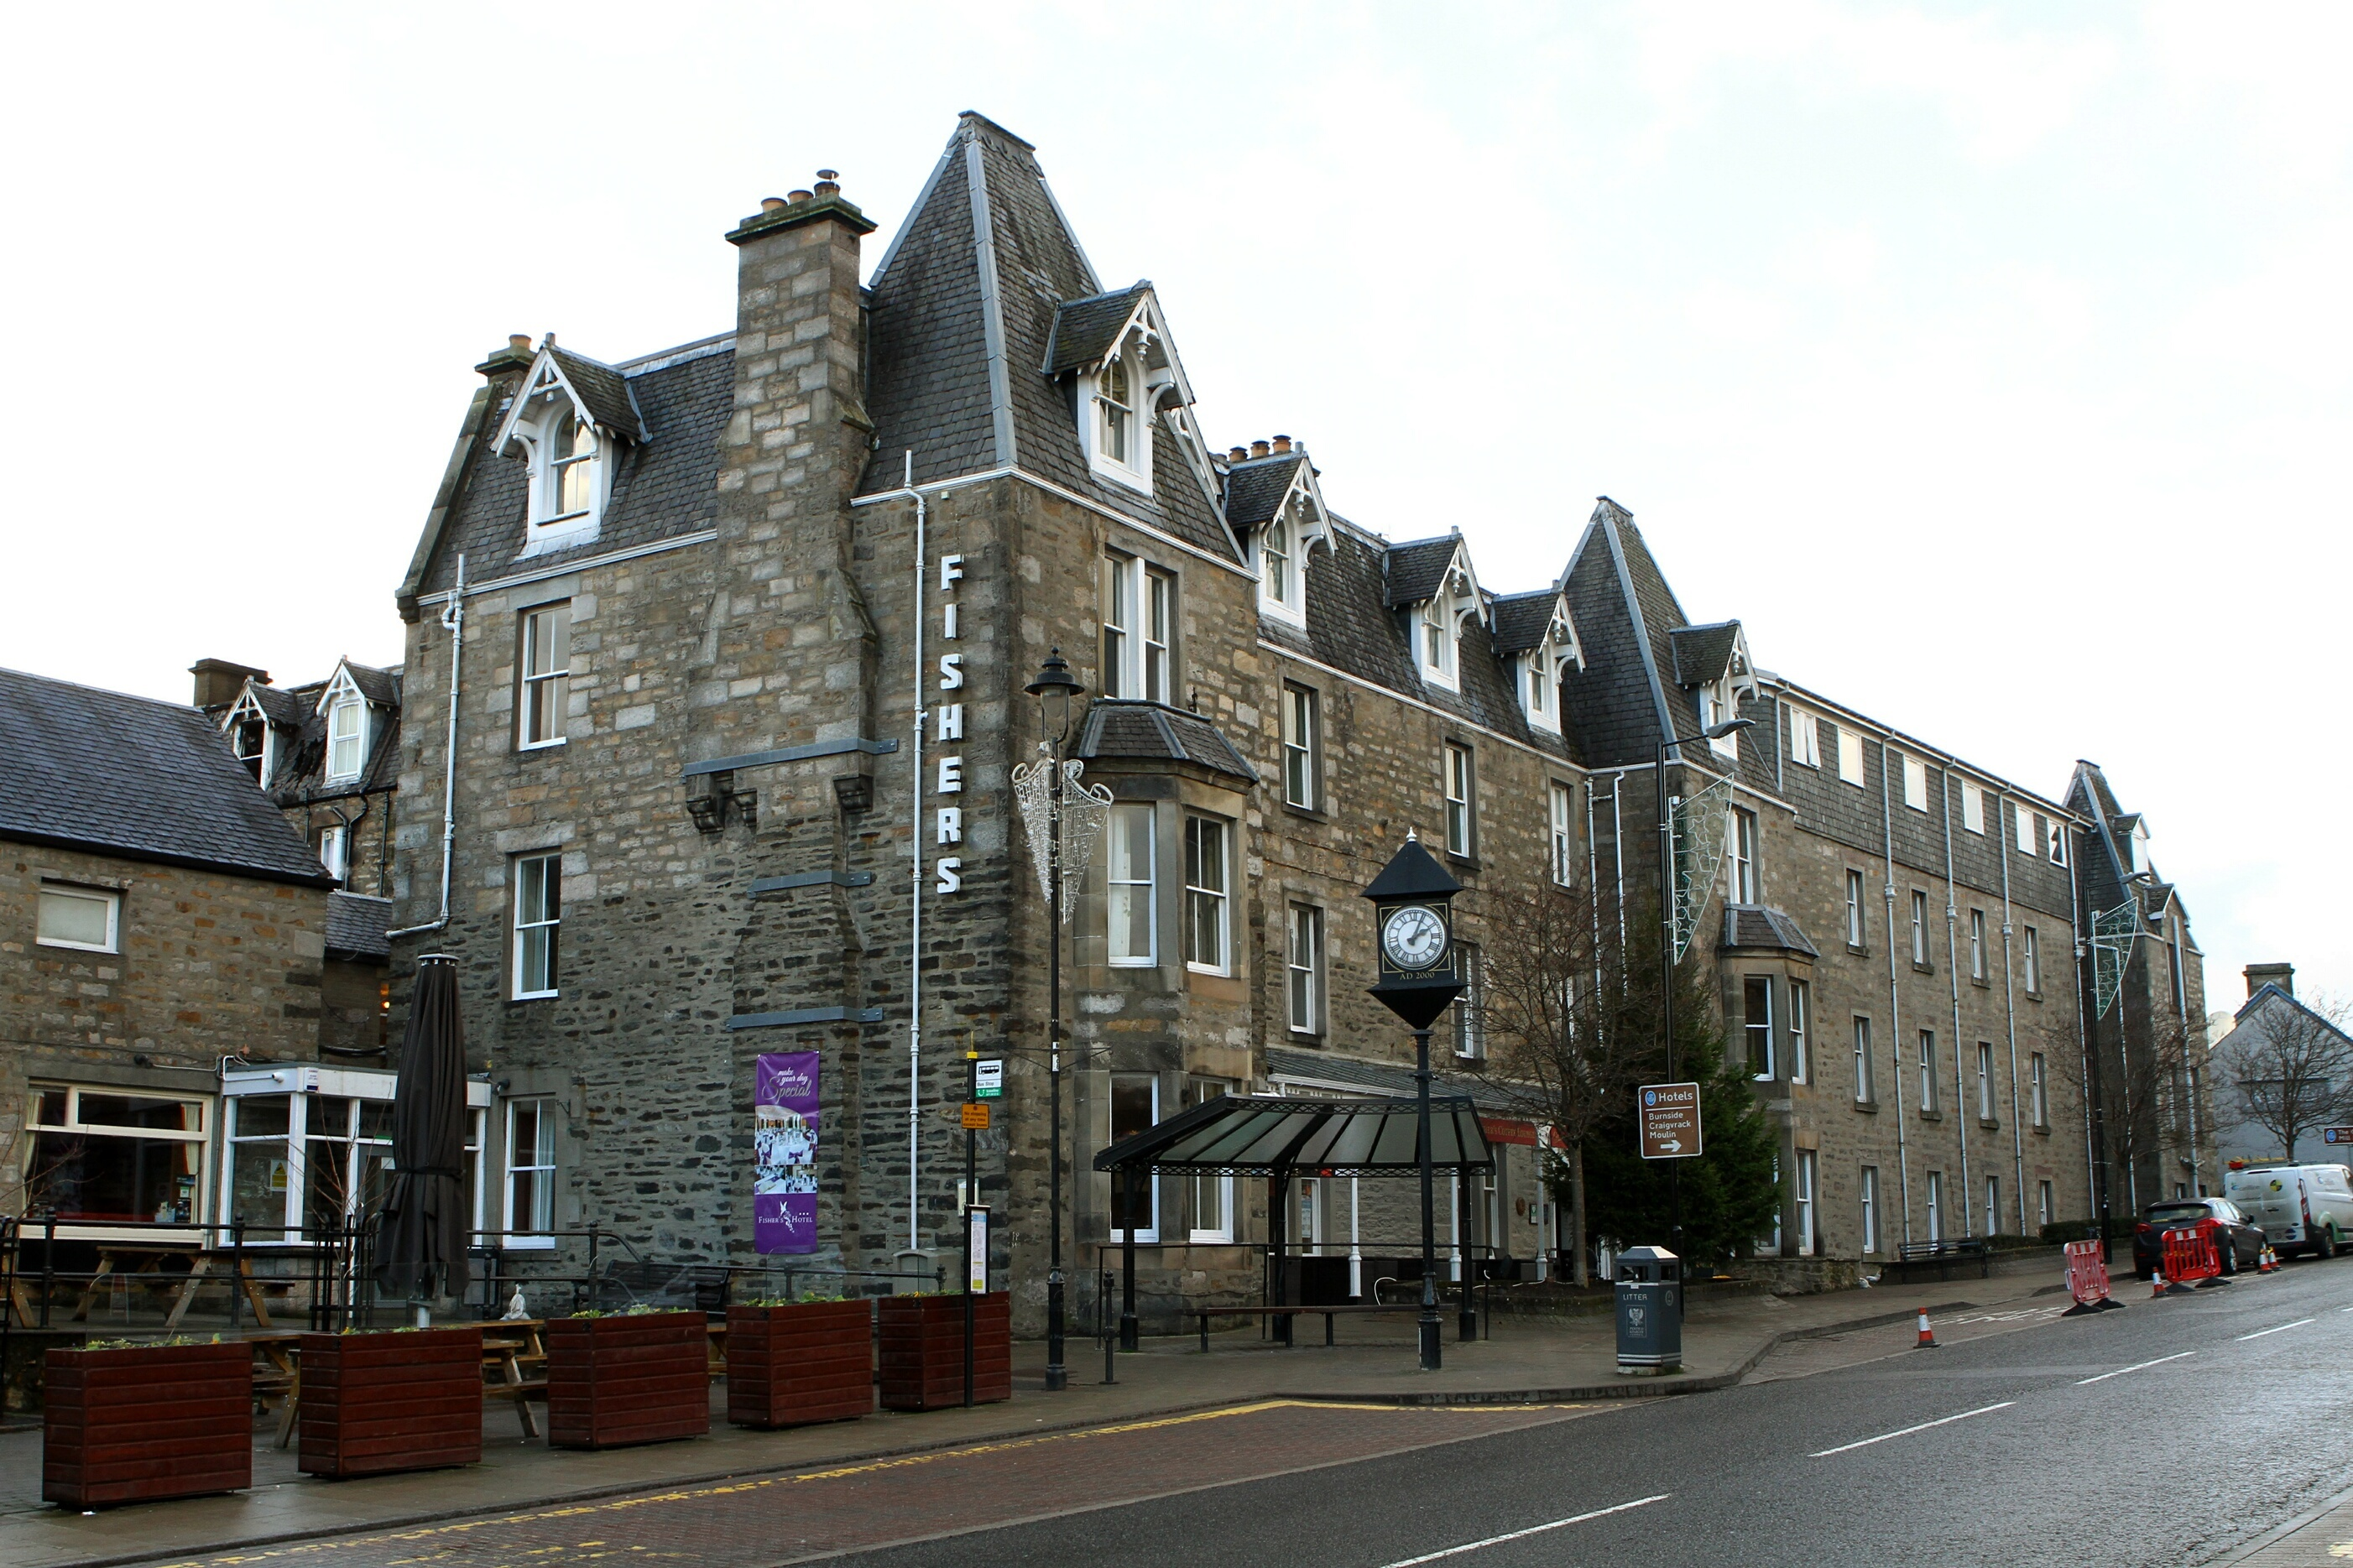 The Fisher's Hotel in Pitlochry.